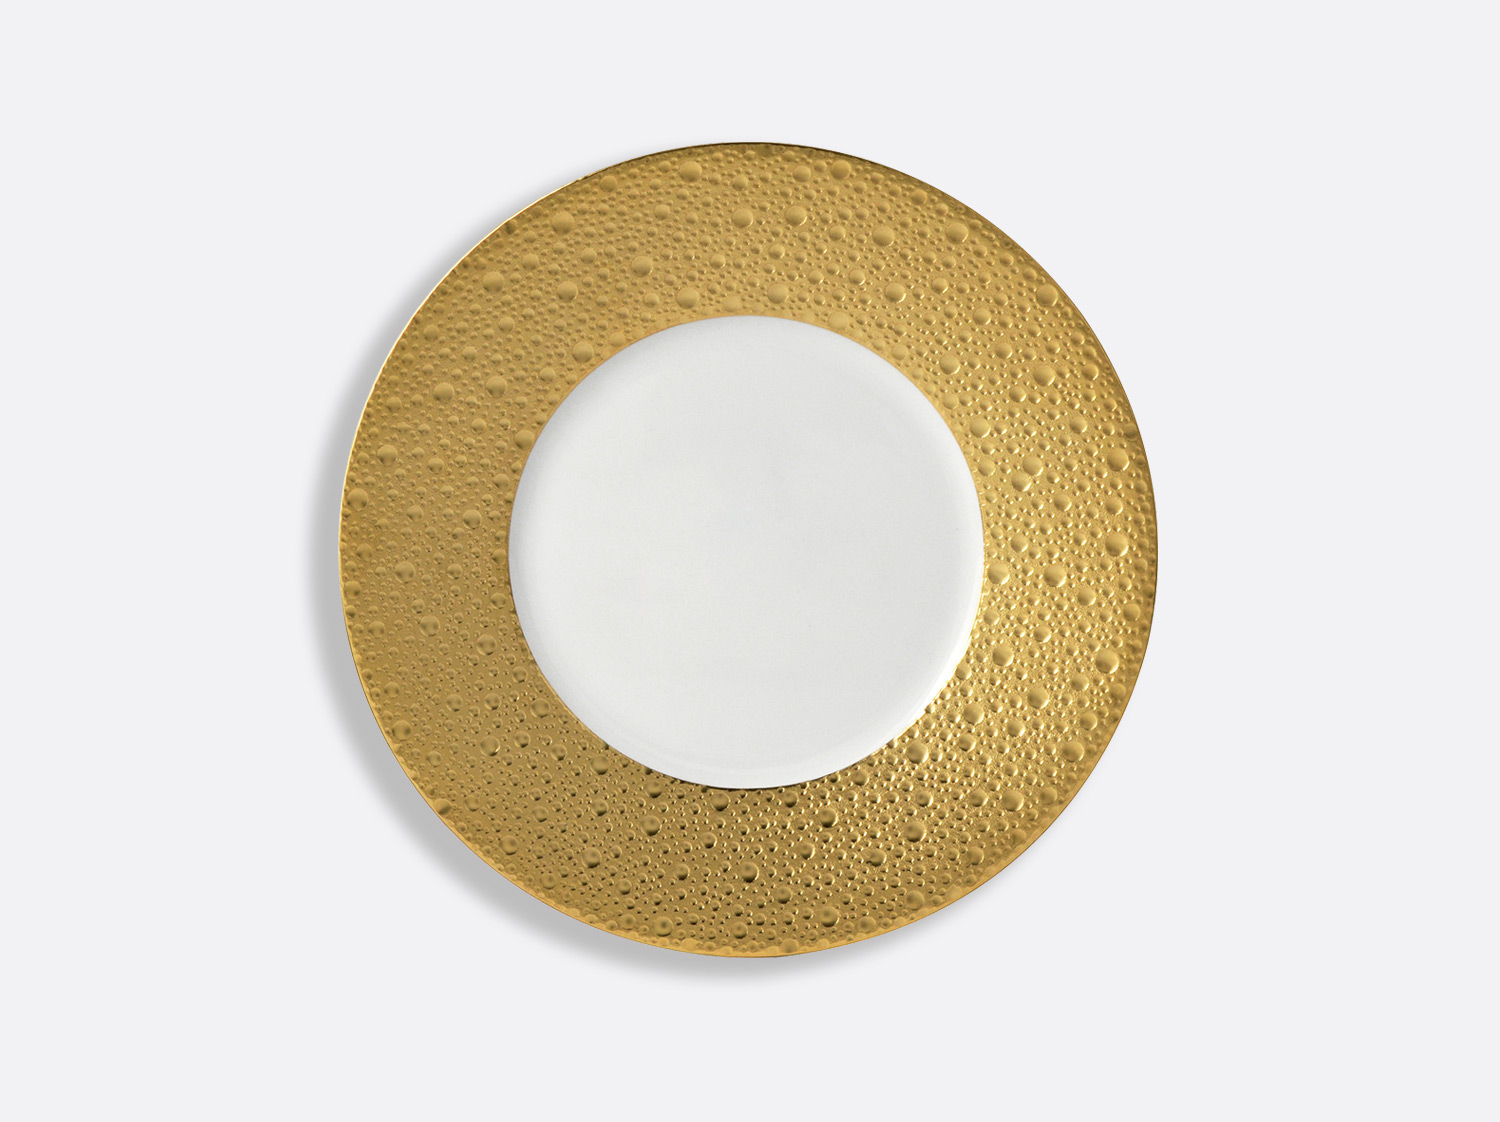 China Plate 21 cm of the collection Ecume gold | Bernardaud